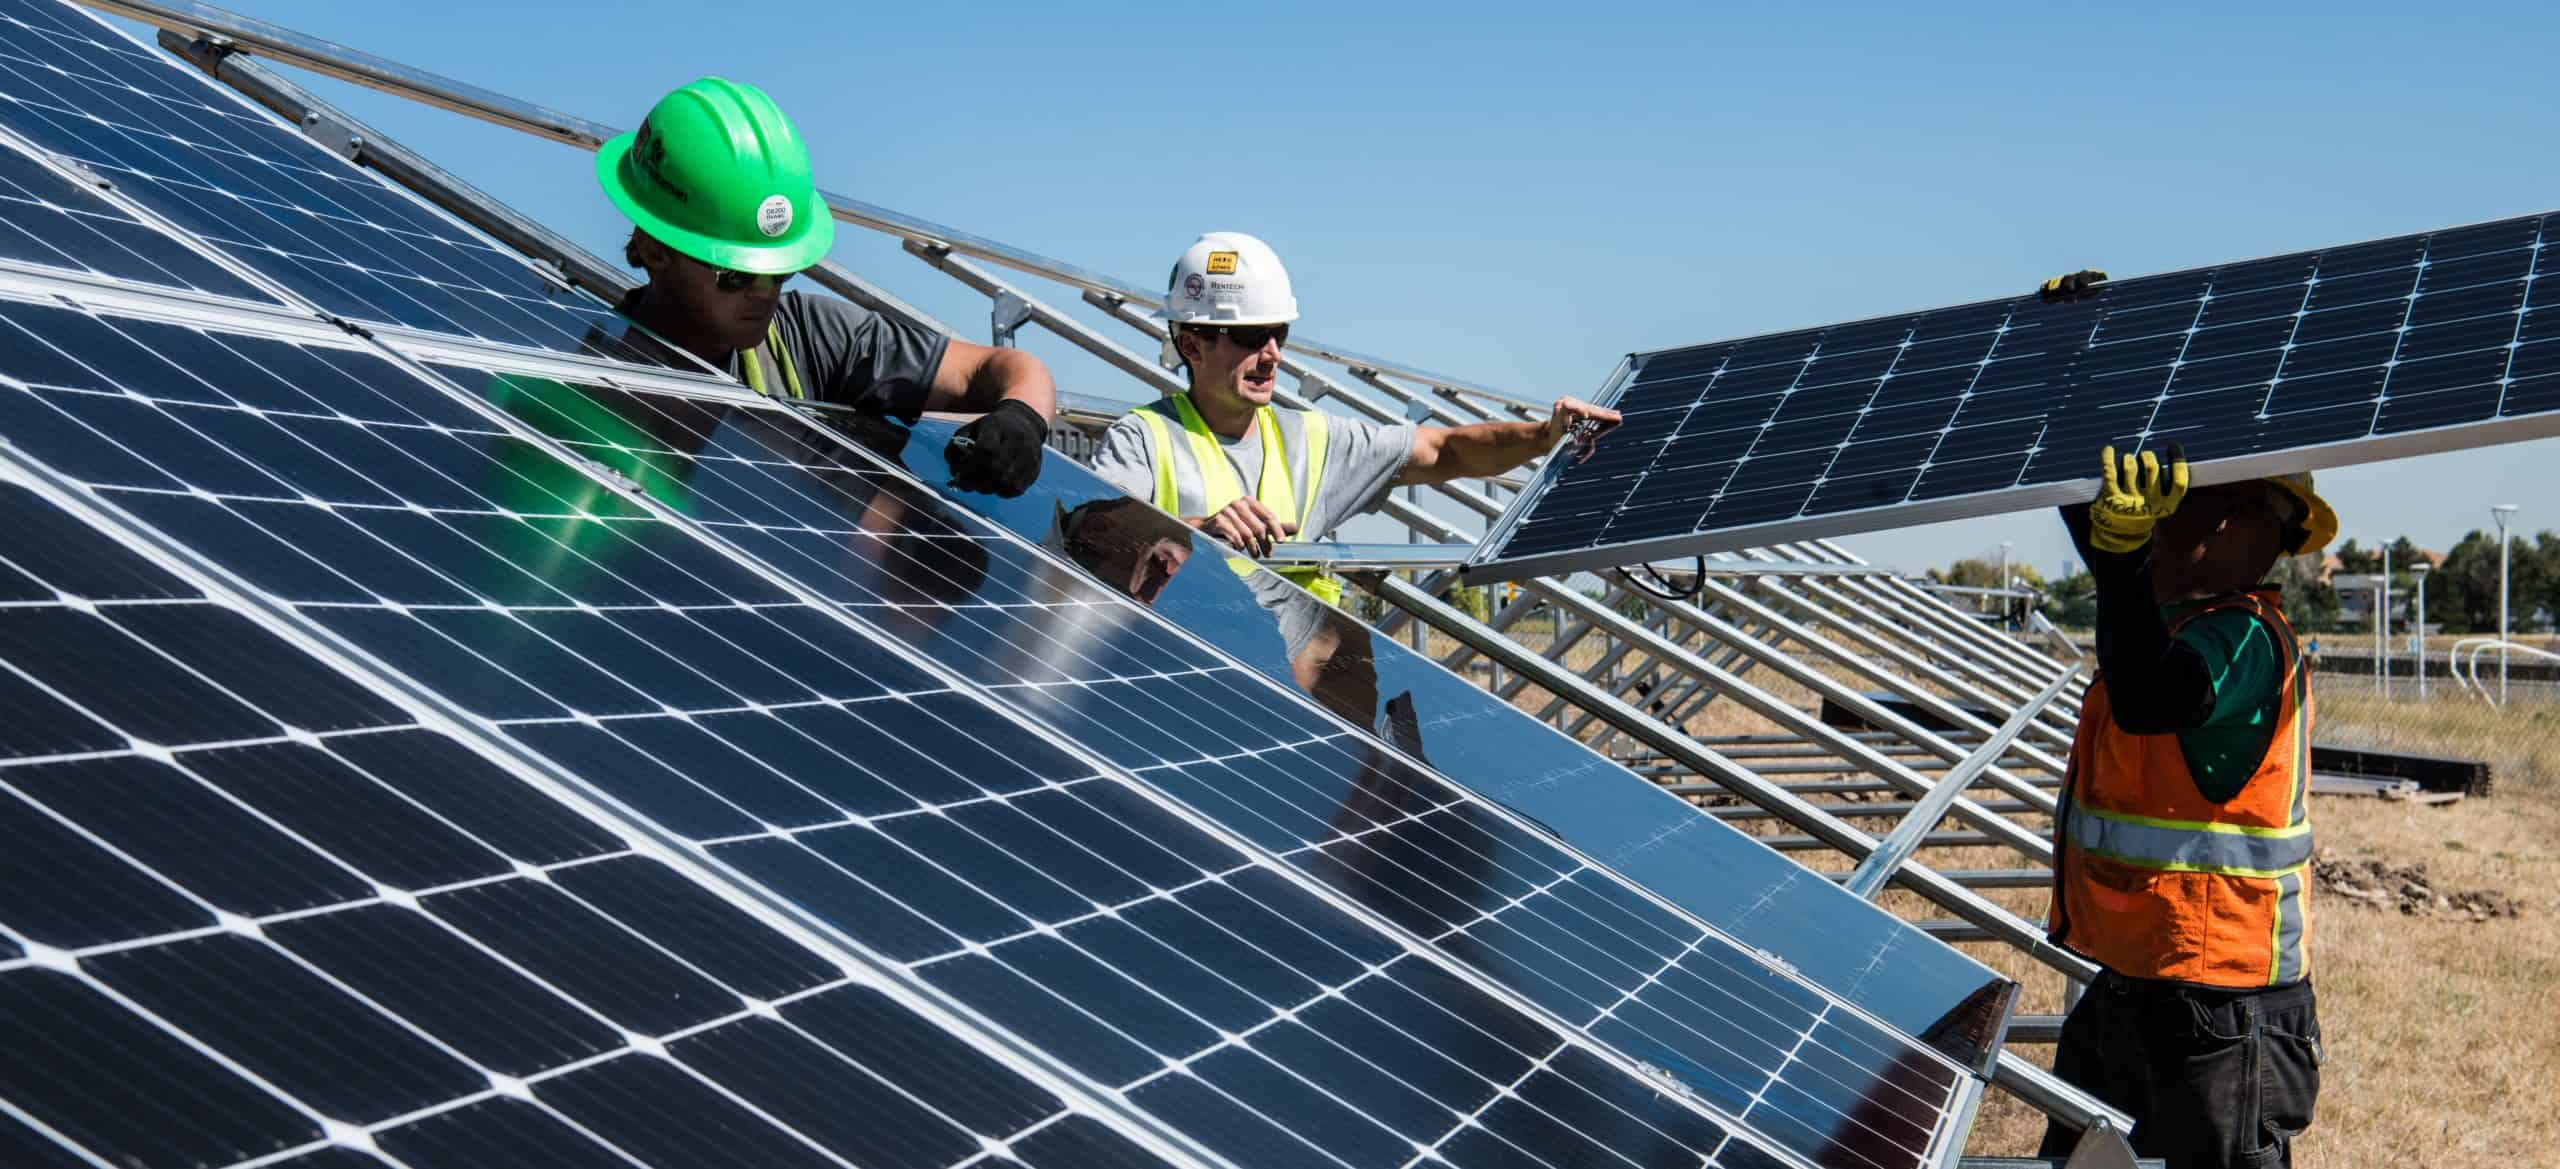 Solar Jobs Up Nationwide and in 31 States After Two Years of Losses